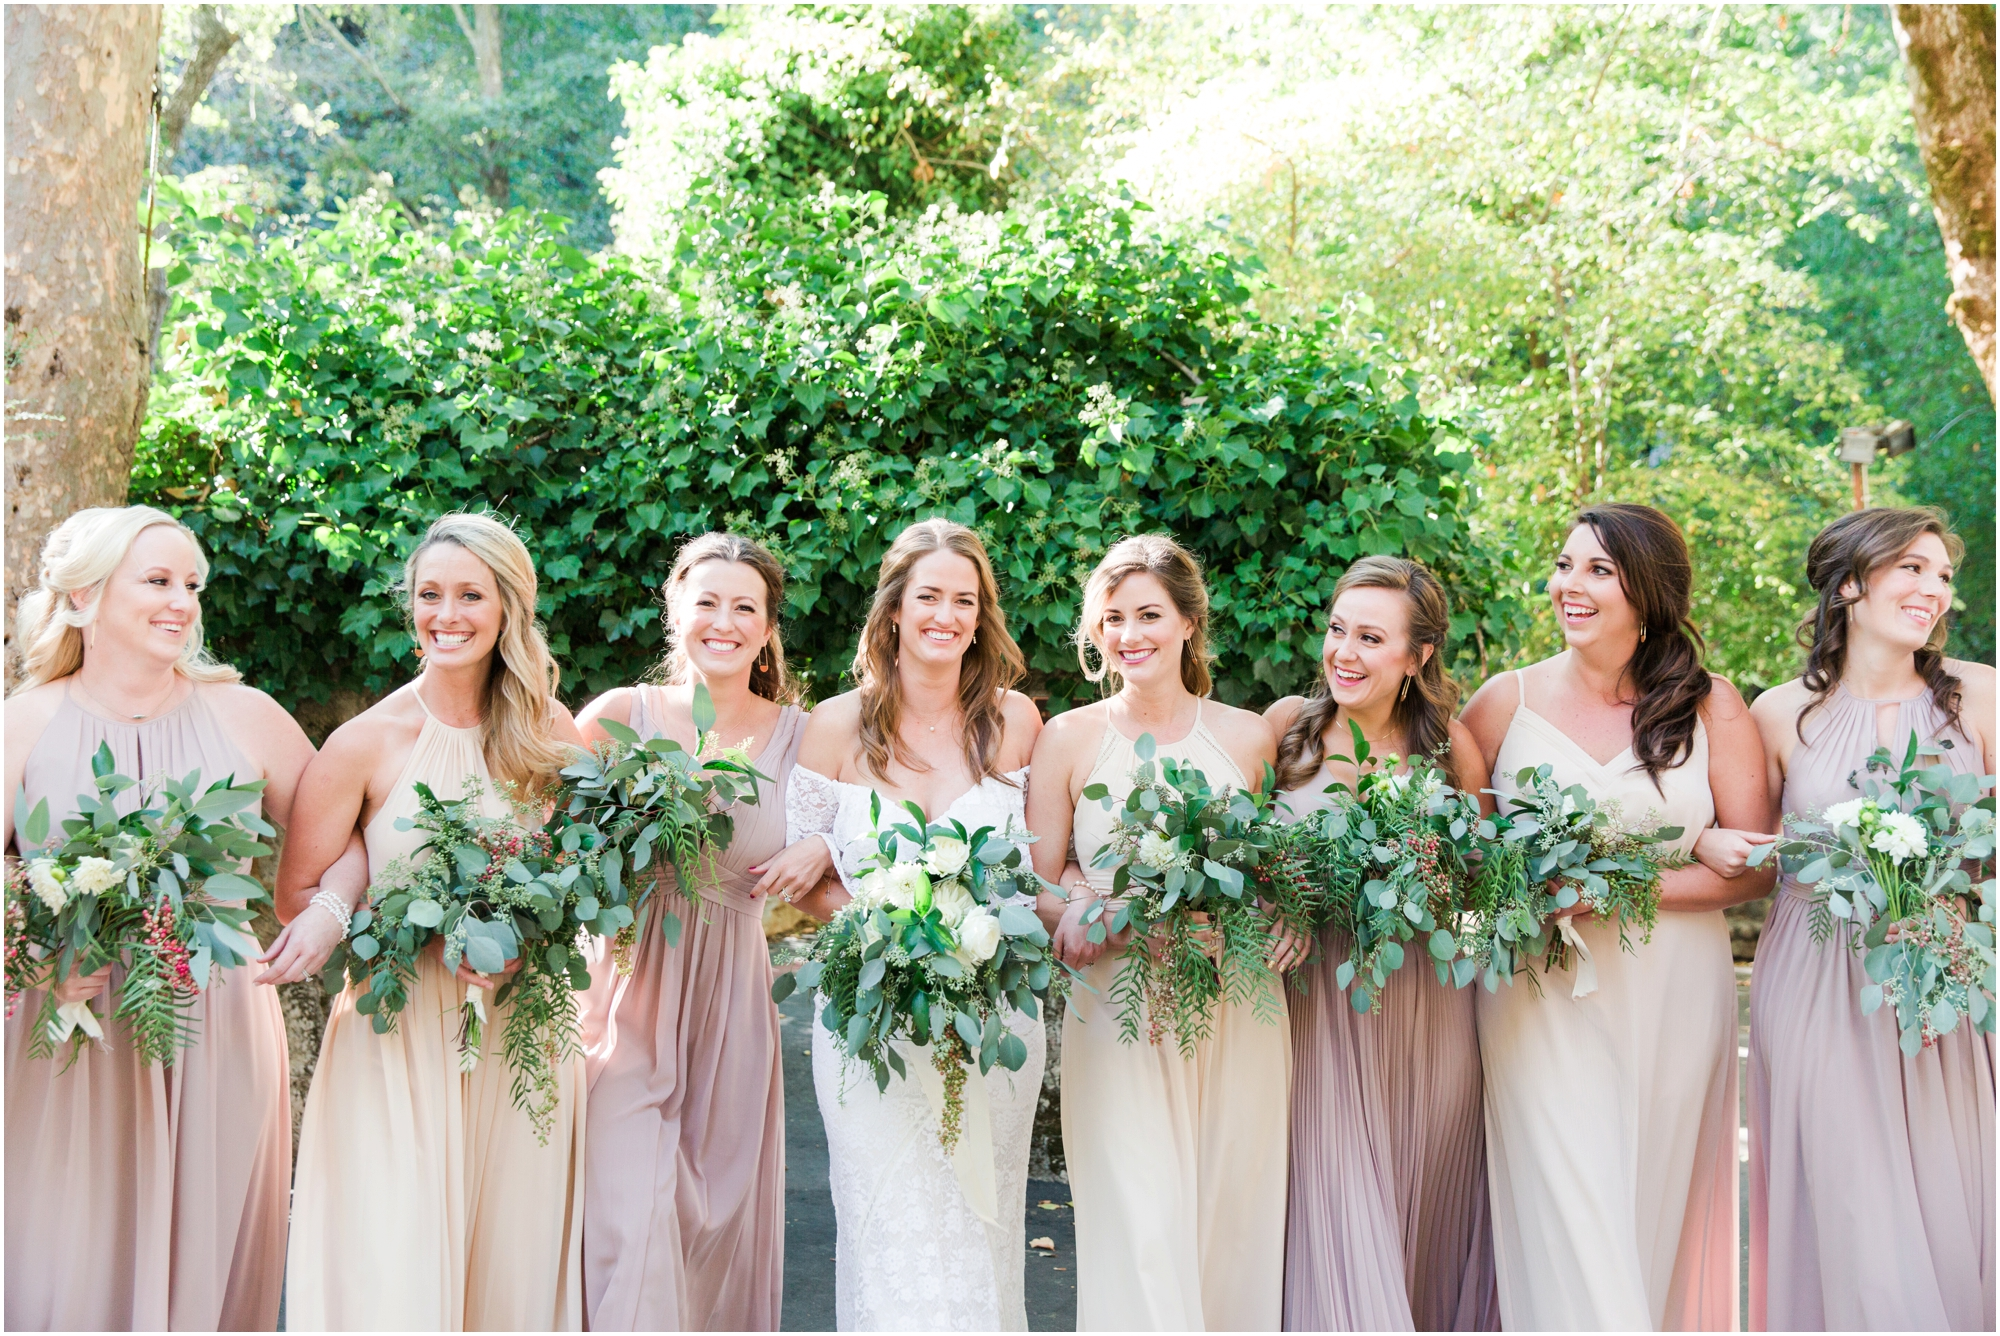 Saratoga+Springs+wedding+pictures+by+Briana+Calderon+Photography_0347.jpg